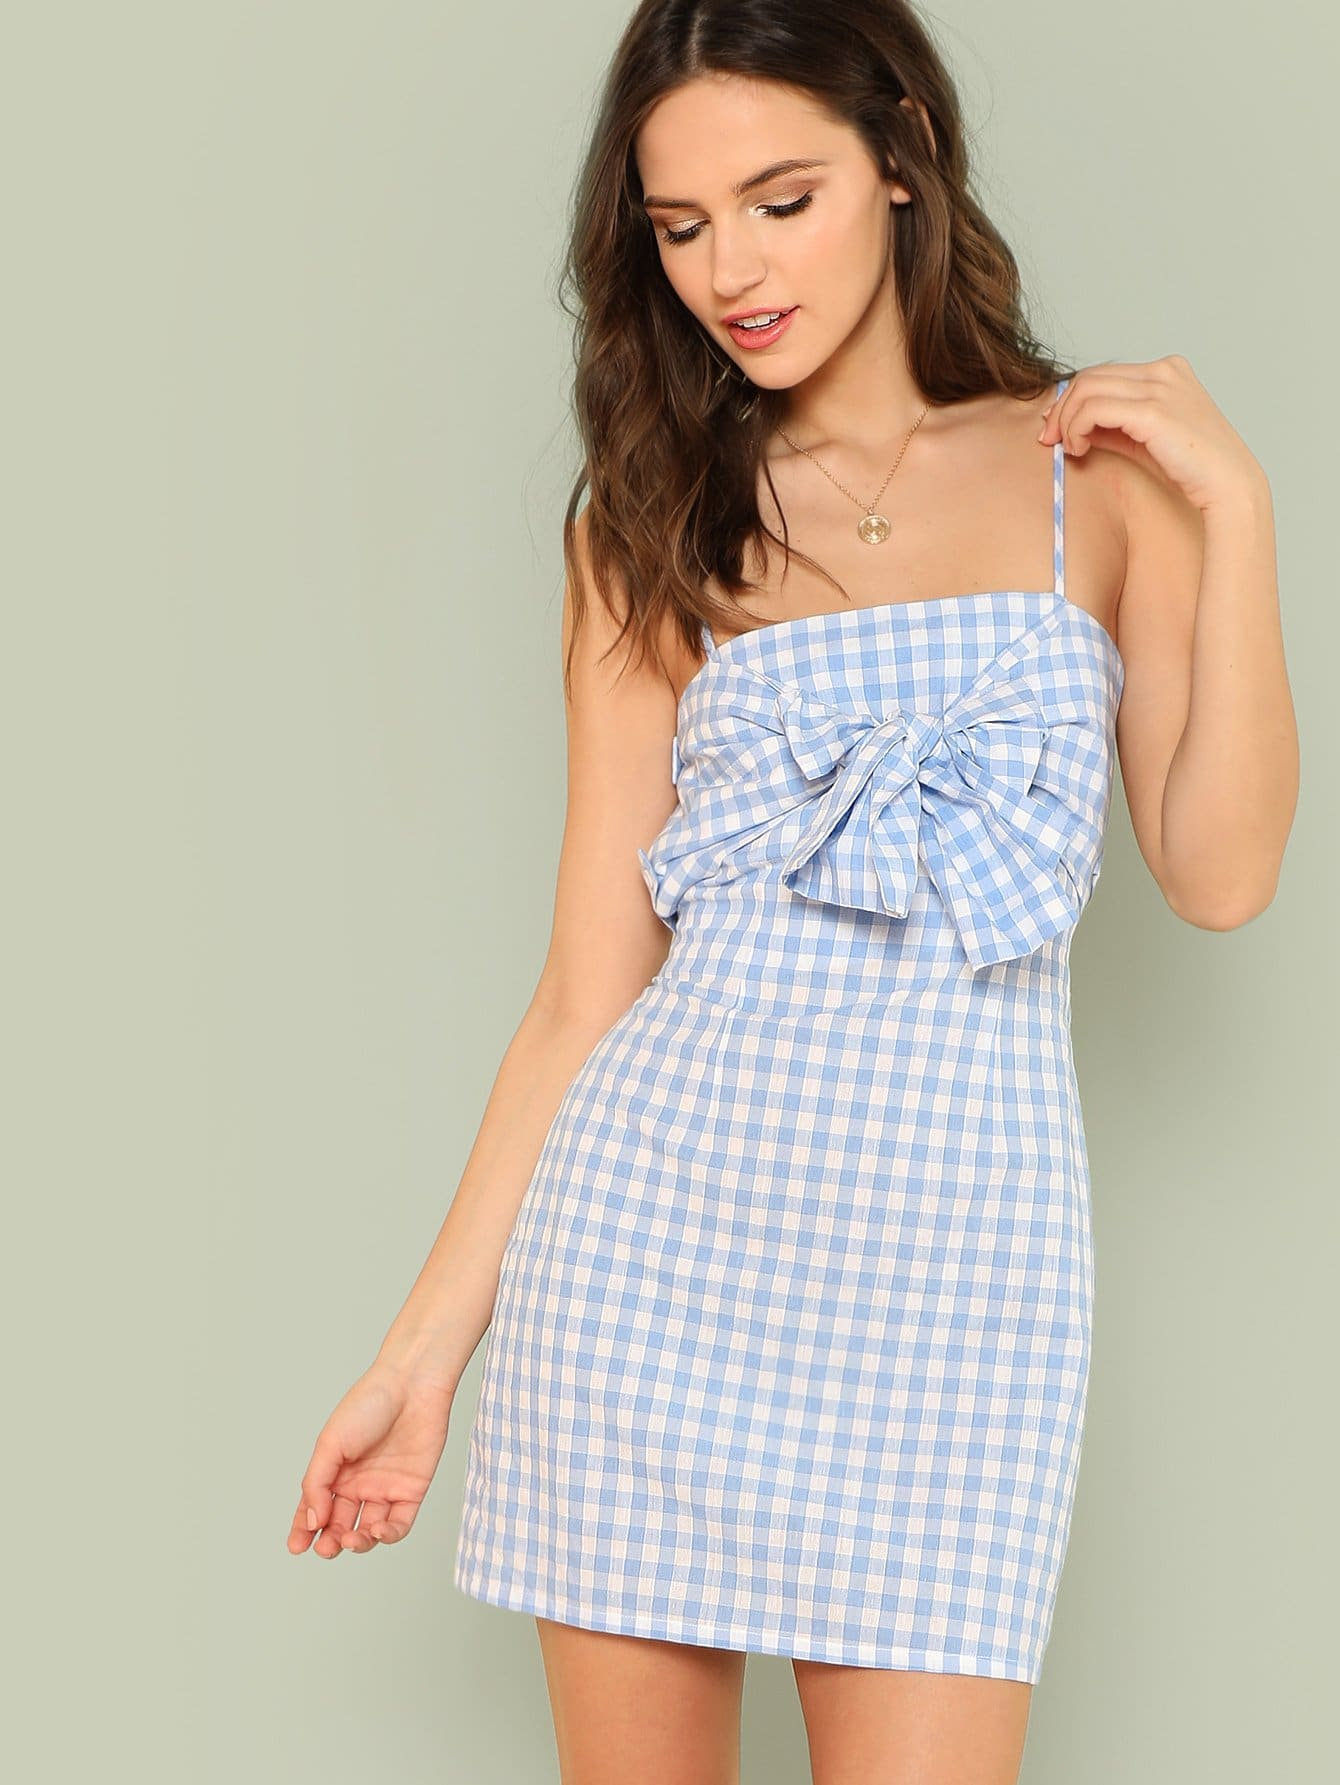 Bow Knotted Front Gingham Slip Dress knotted bow gingham headband 2pcs